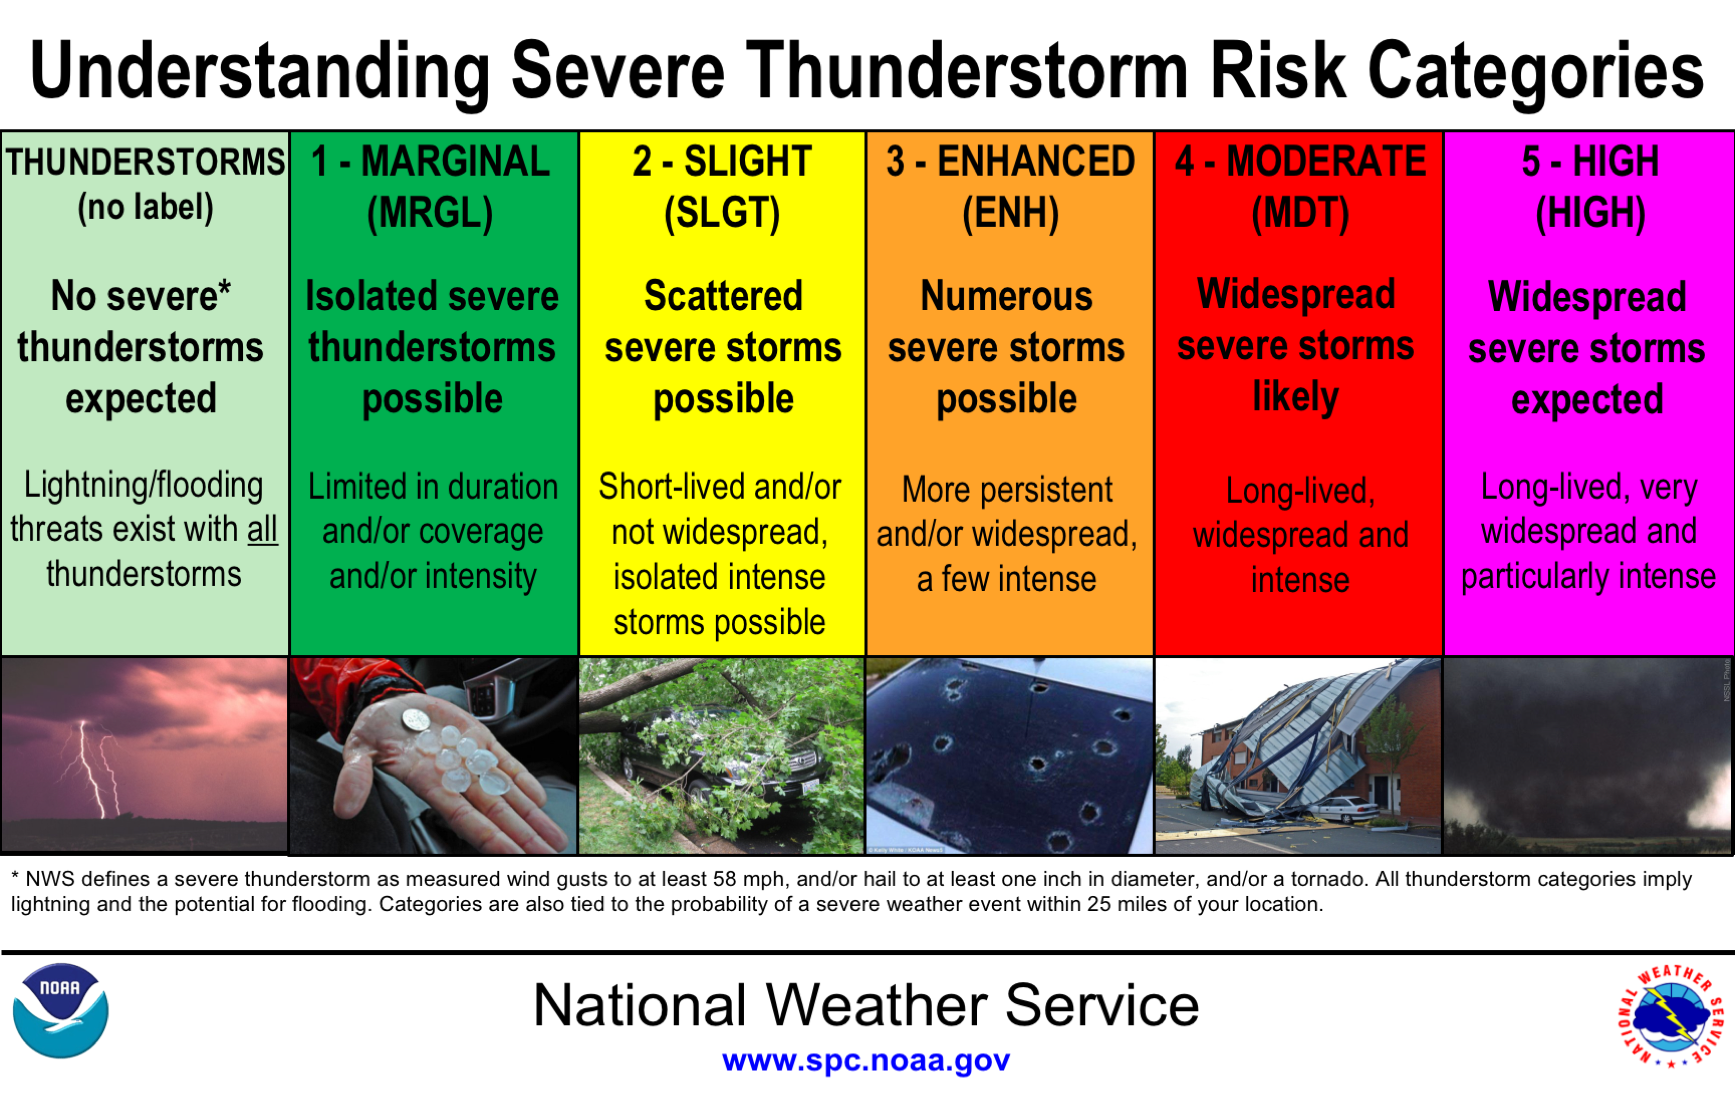 https://www.spc.noaa.gov/new/images/Outlook-category-descriptions.png